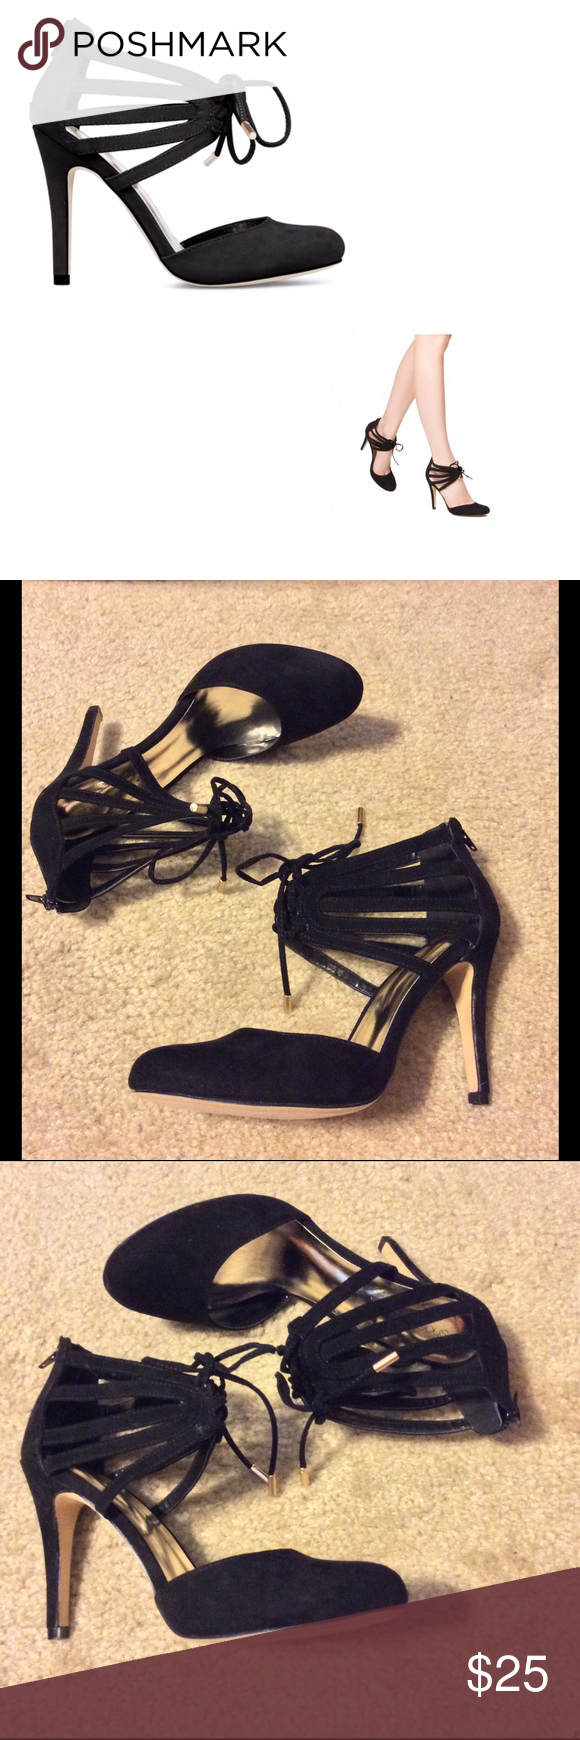 """Terilyn pumps by Shoedazzle These super sexy, lace up pumps by Shoedazzle are in excellent condition. Only worn once around the house for about 30 minutes. Outside heel is 4"""" but inside heel is 3"""" due to platform base. Shoe Dazzle Shoes Heels"""